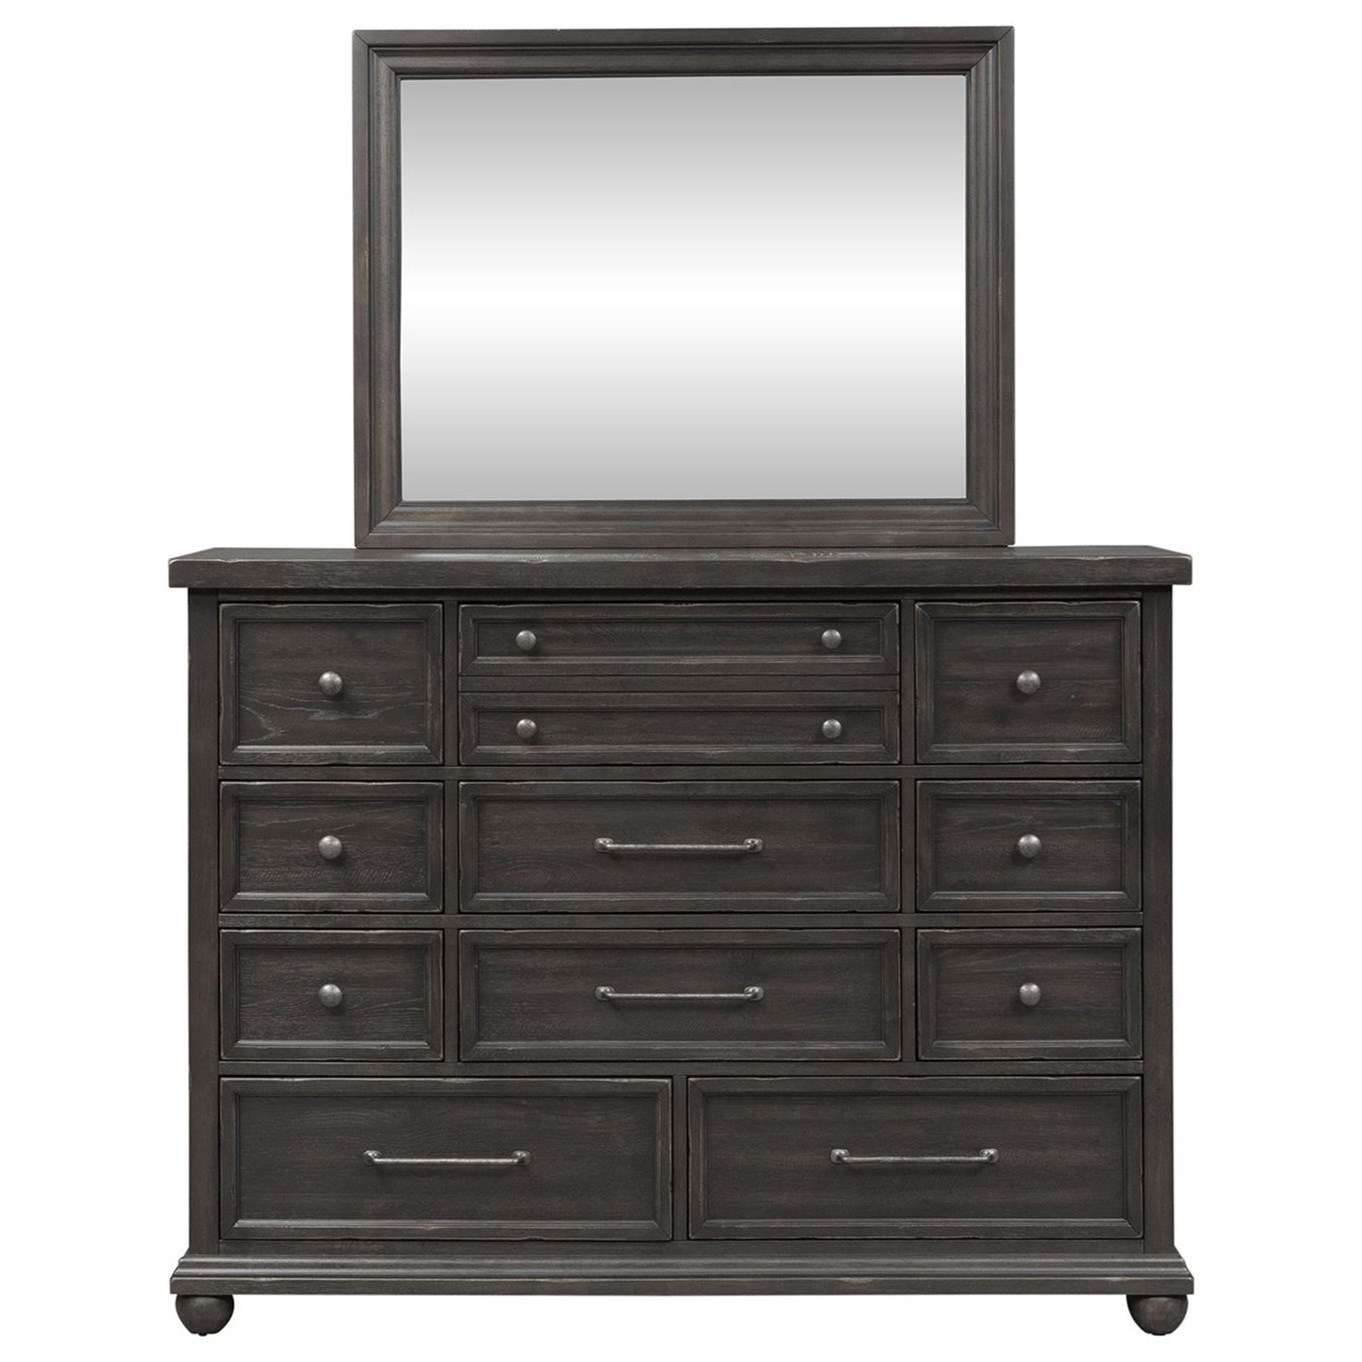 Harvest Home Dresser and Mirror by Libby at Walker's Furniture